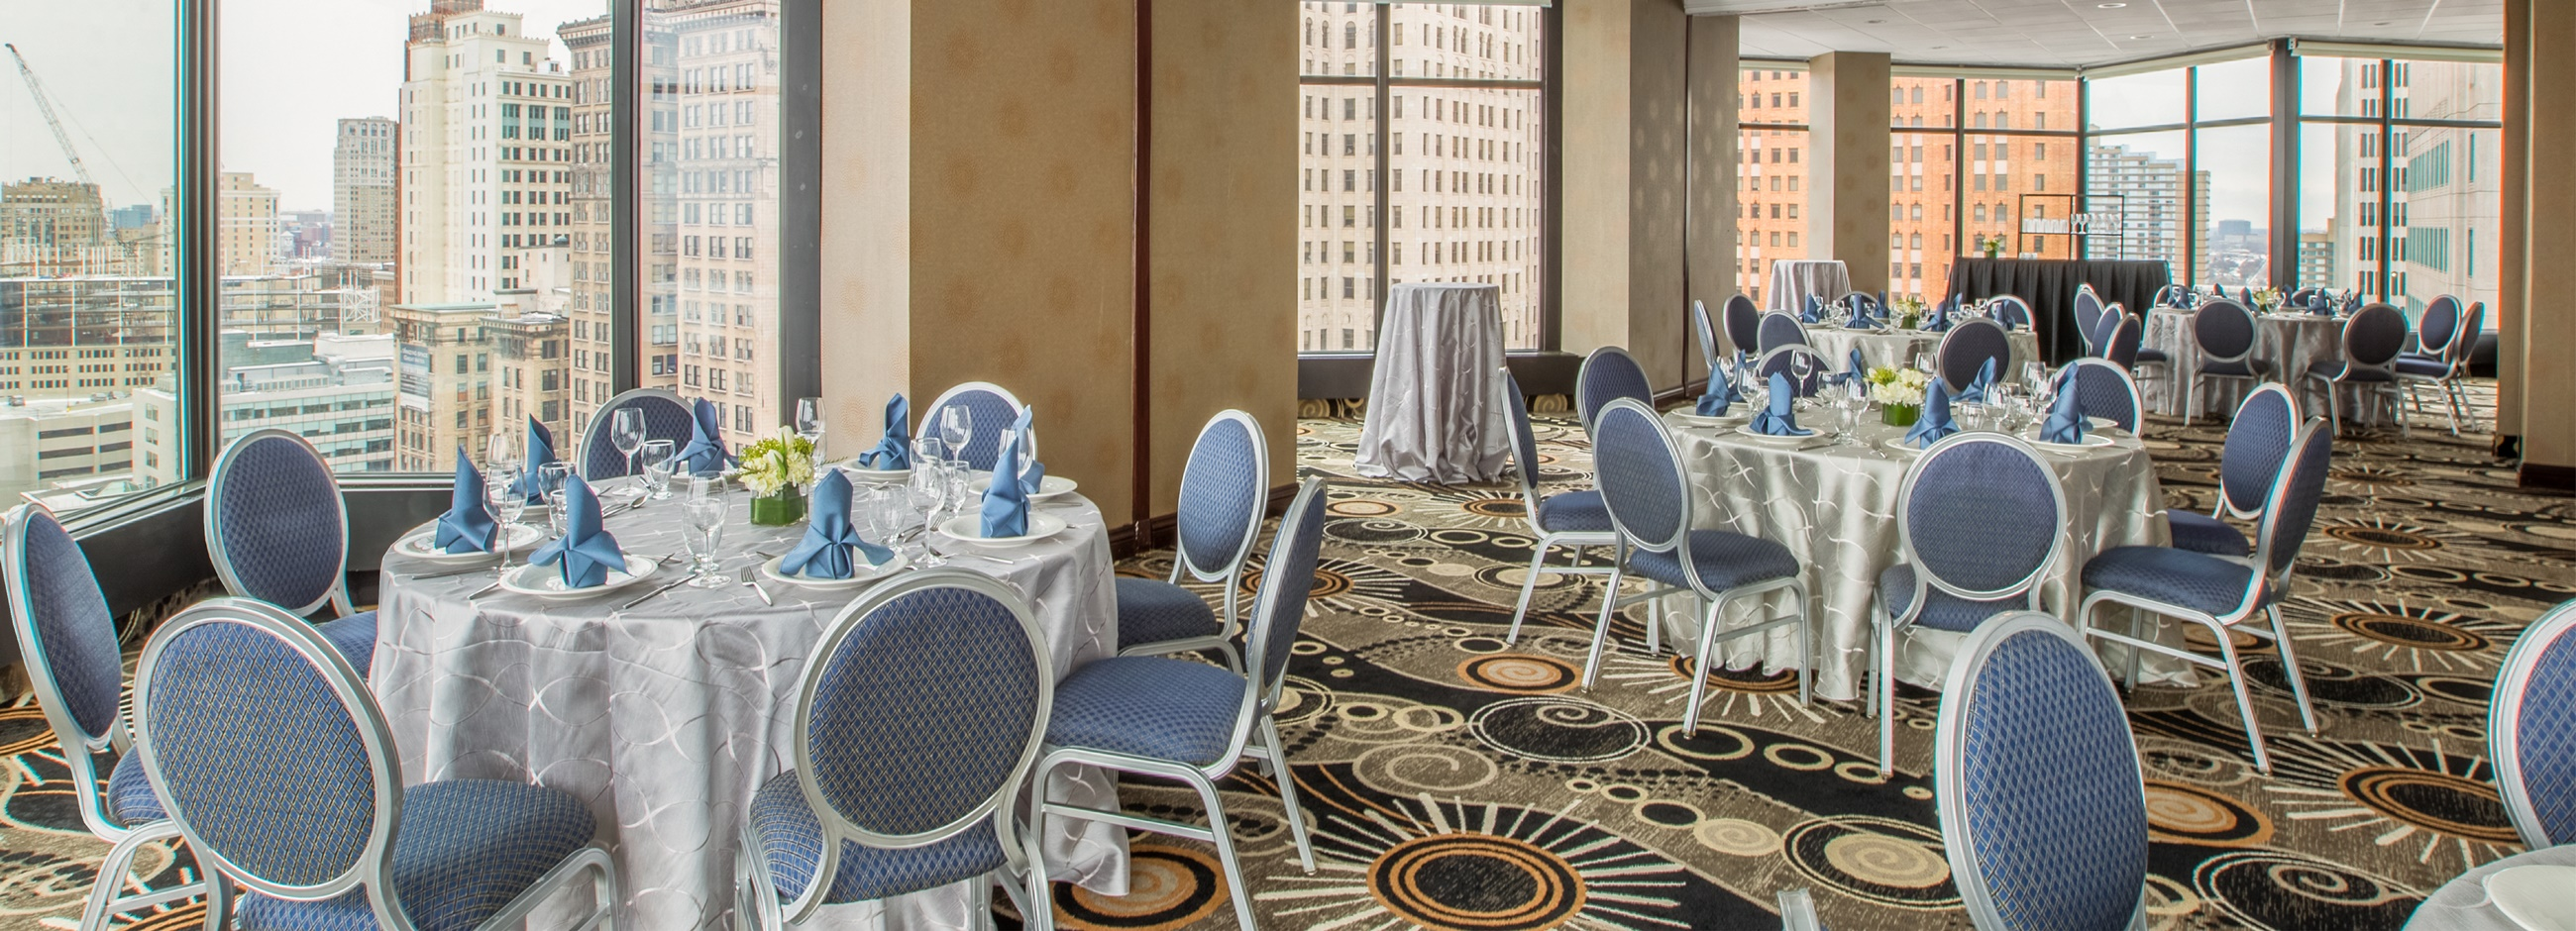 Meeting room at the Crowne Plaza Detroit Downtown Riverfront